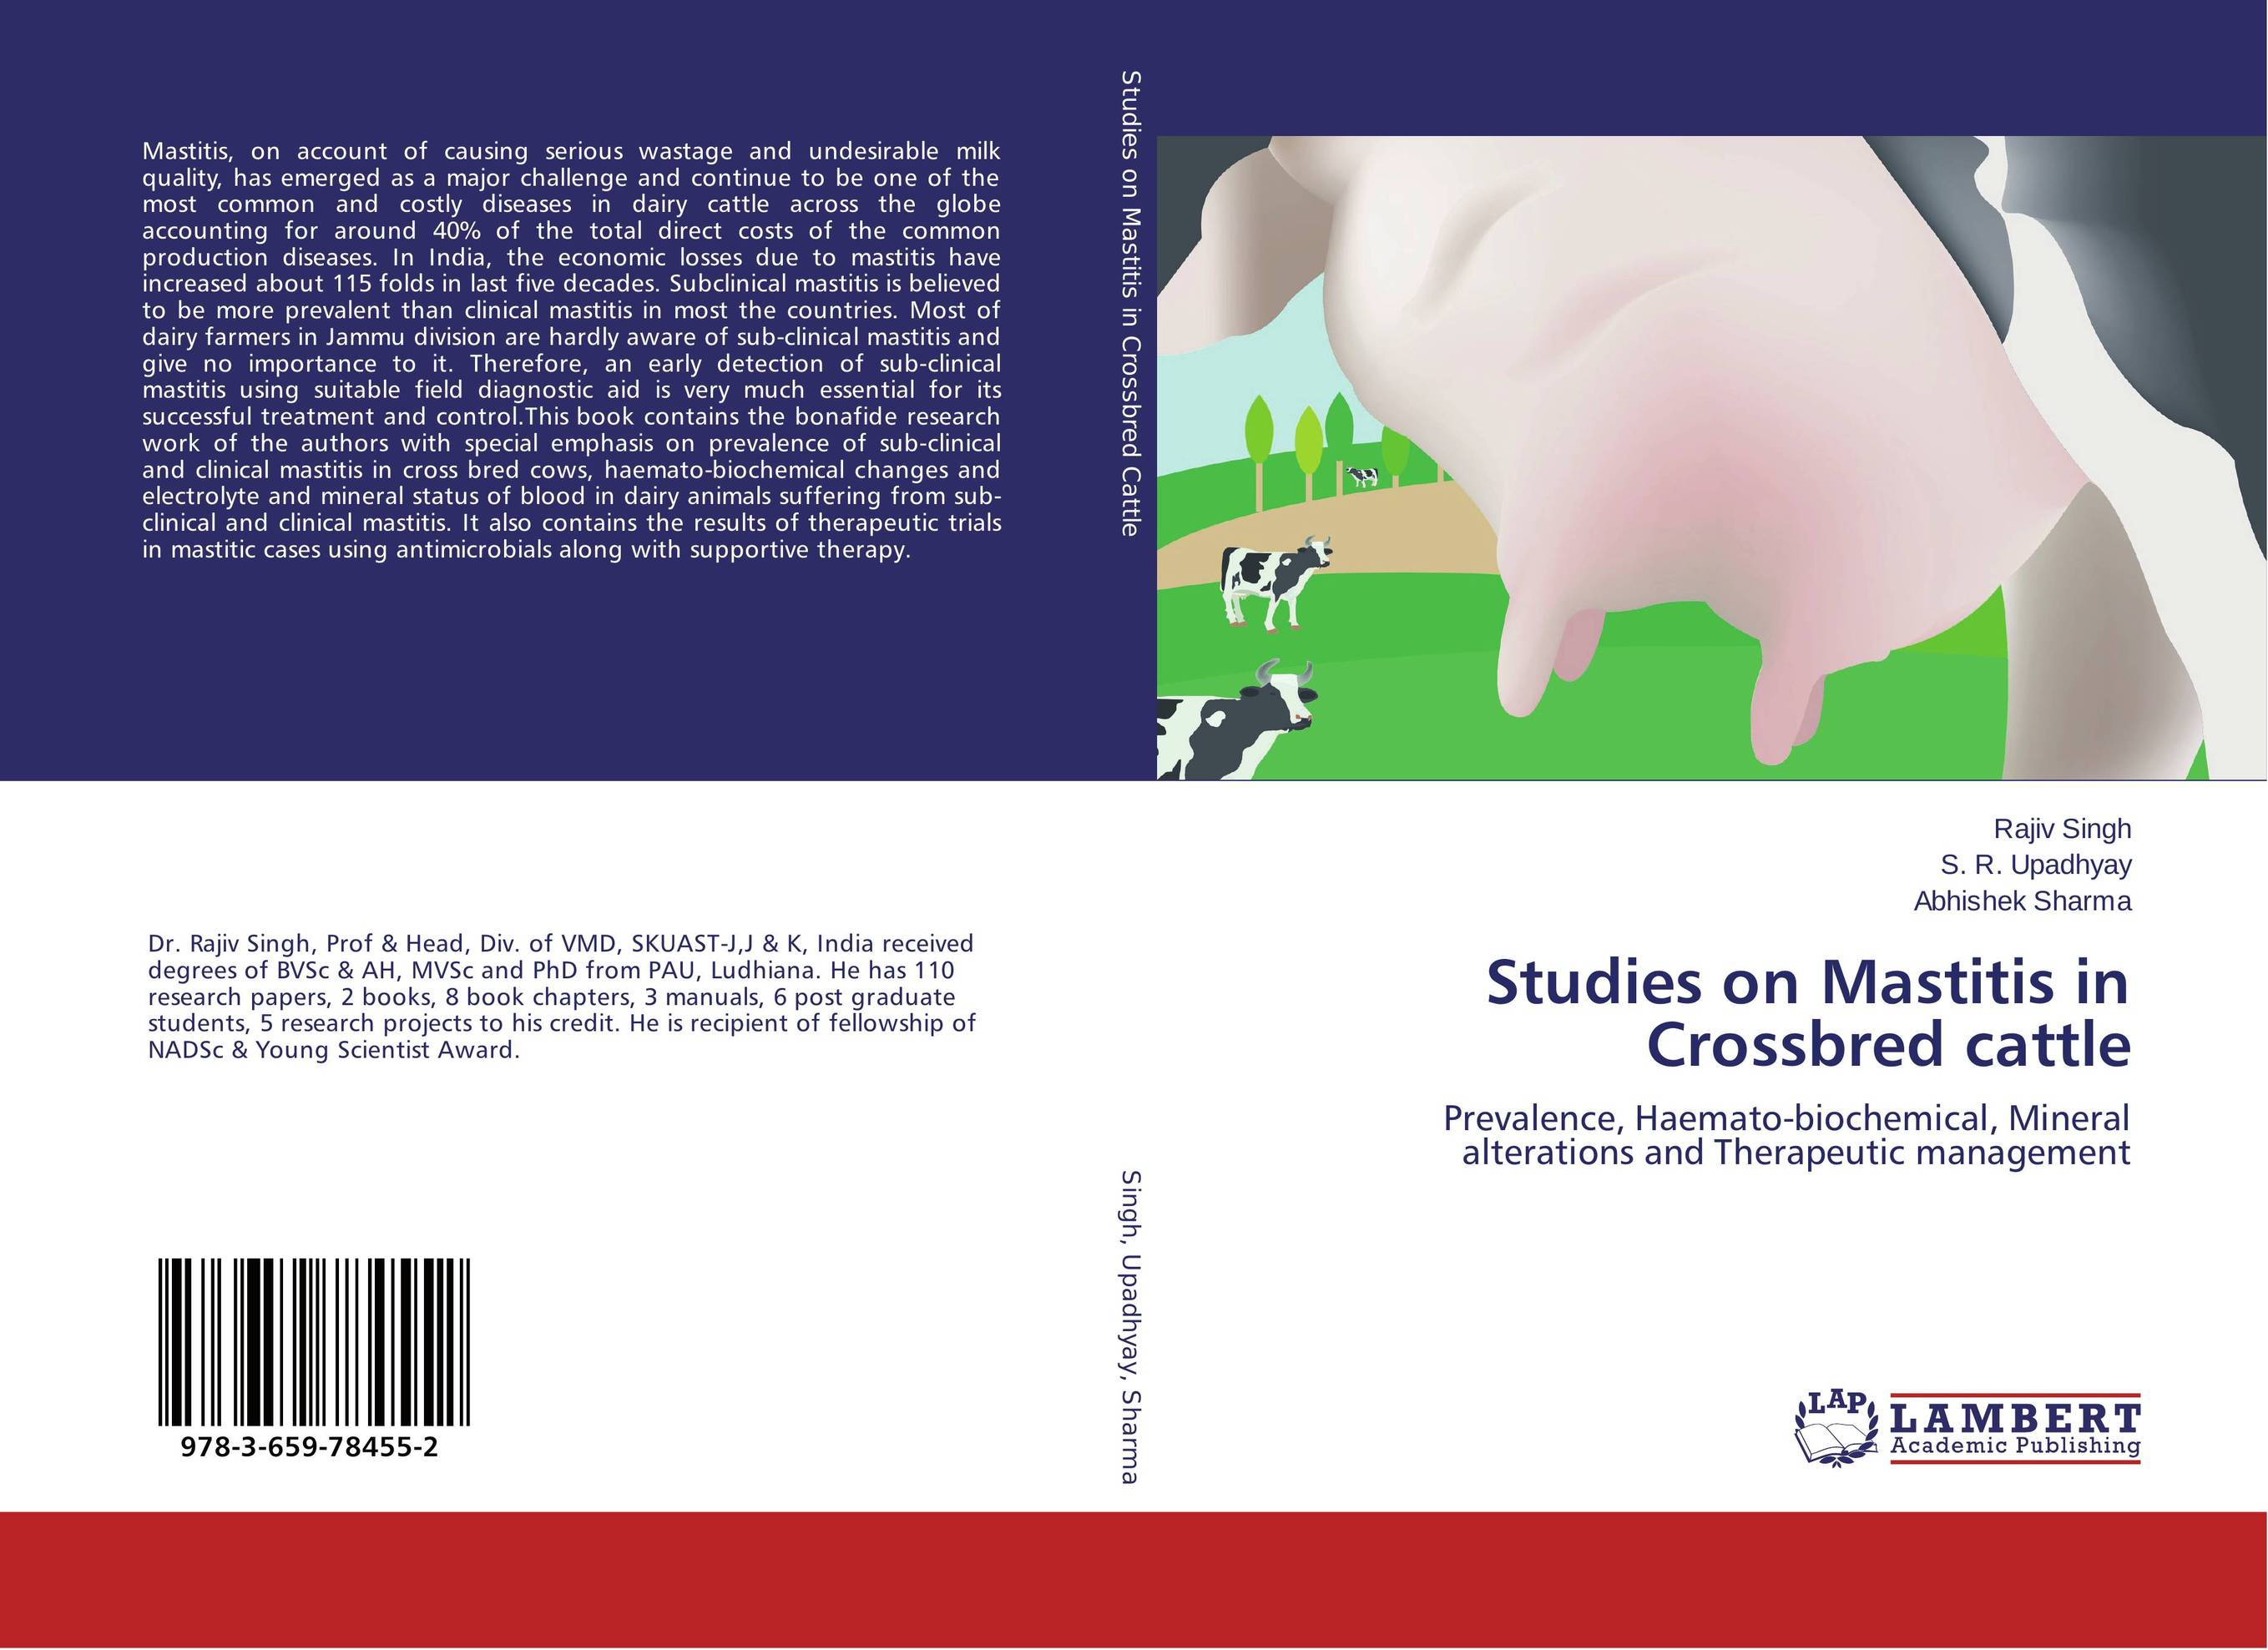 Studies on Mastitis in Crossbred cattle current fertility status in cattle of mini dairy farms